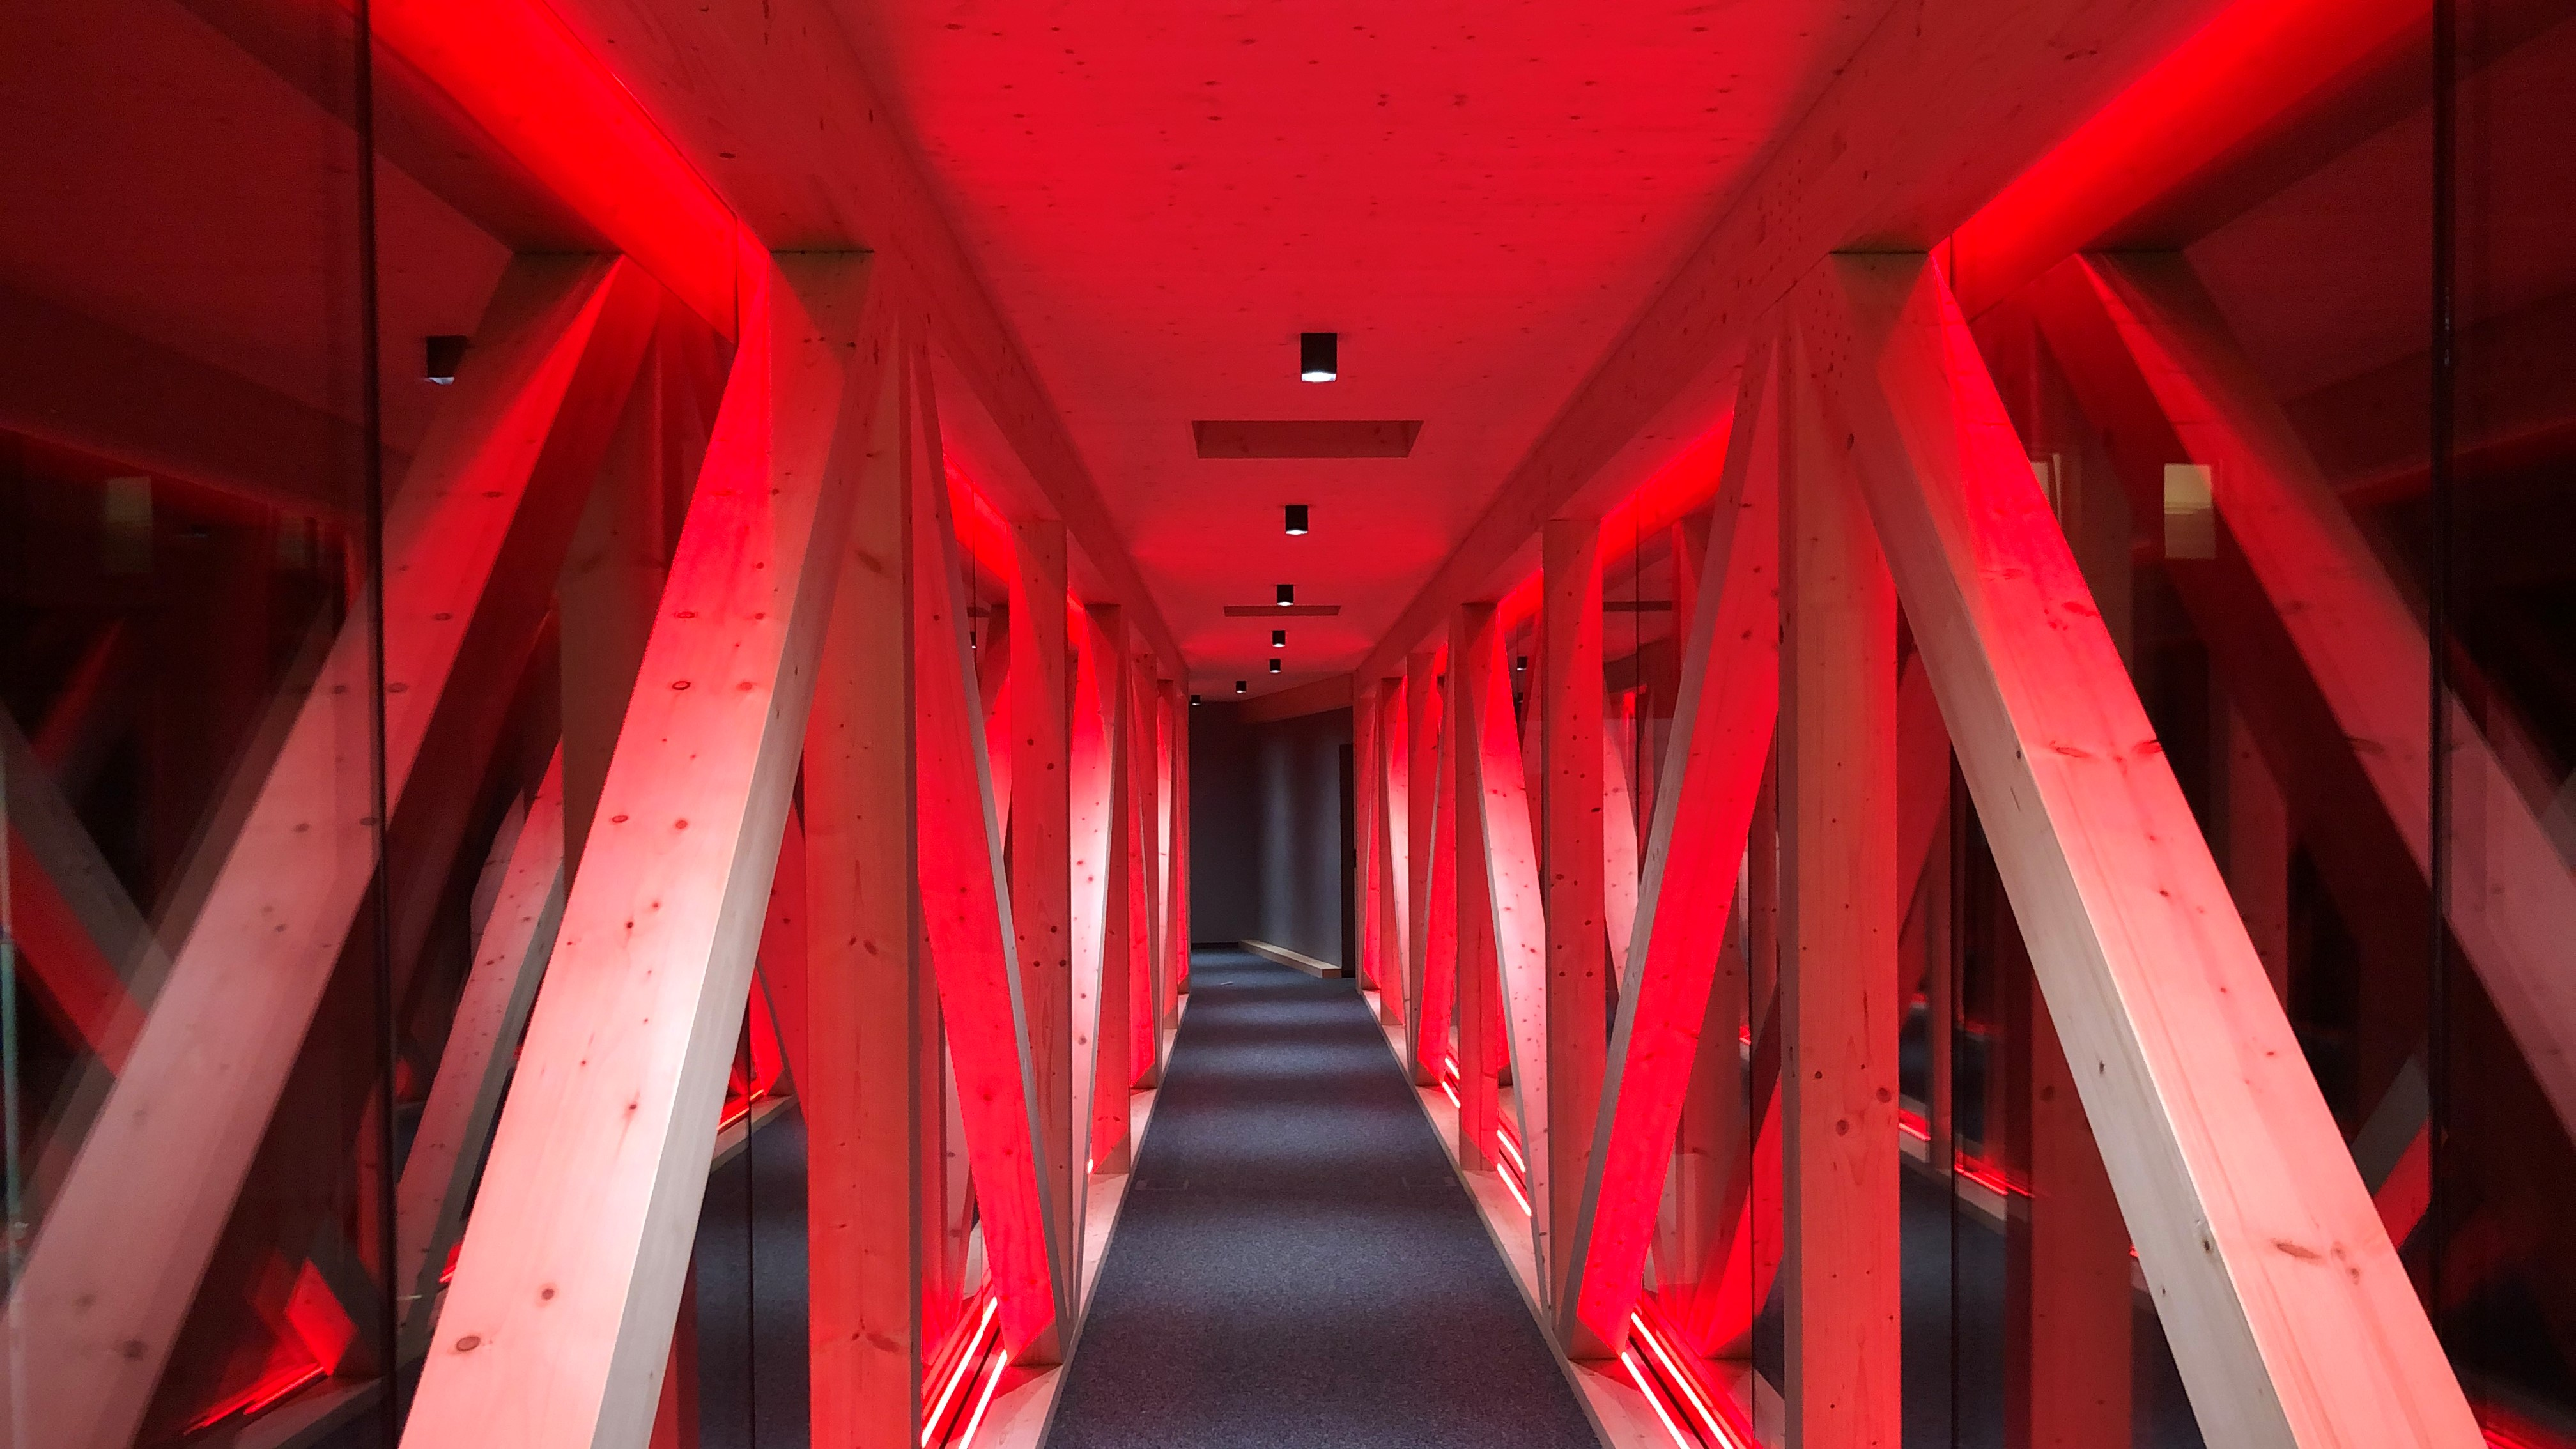 Company Rieder uses Artecta to light up the RIEDER Bridge in Zillertal, Austria!